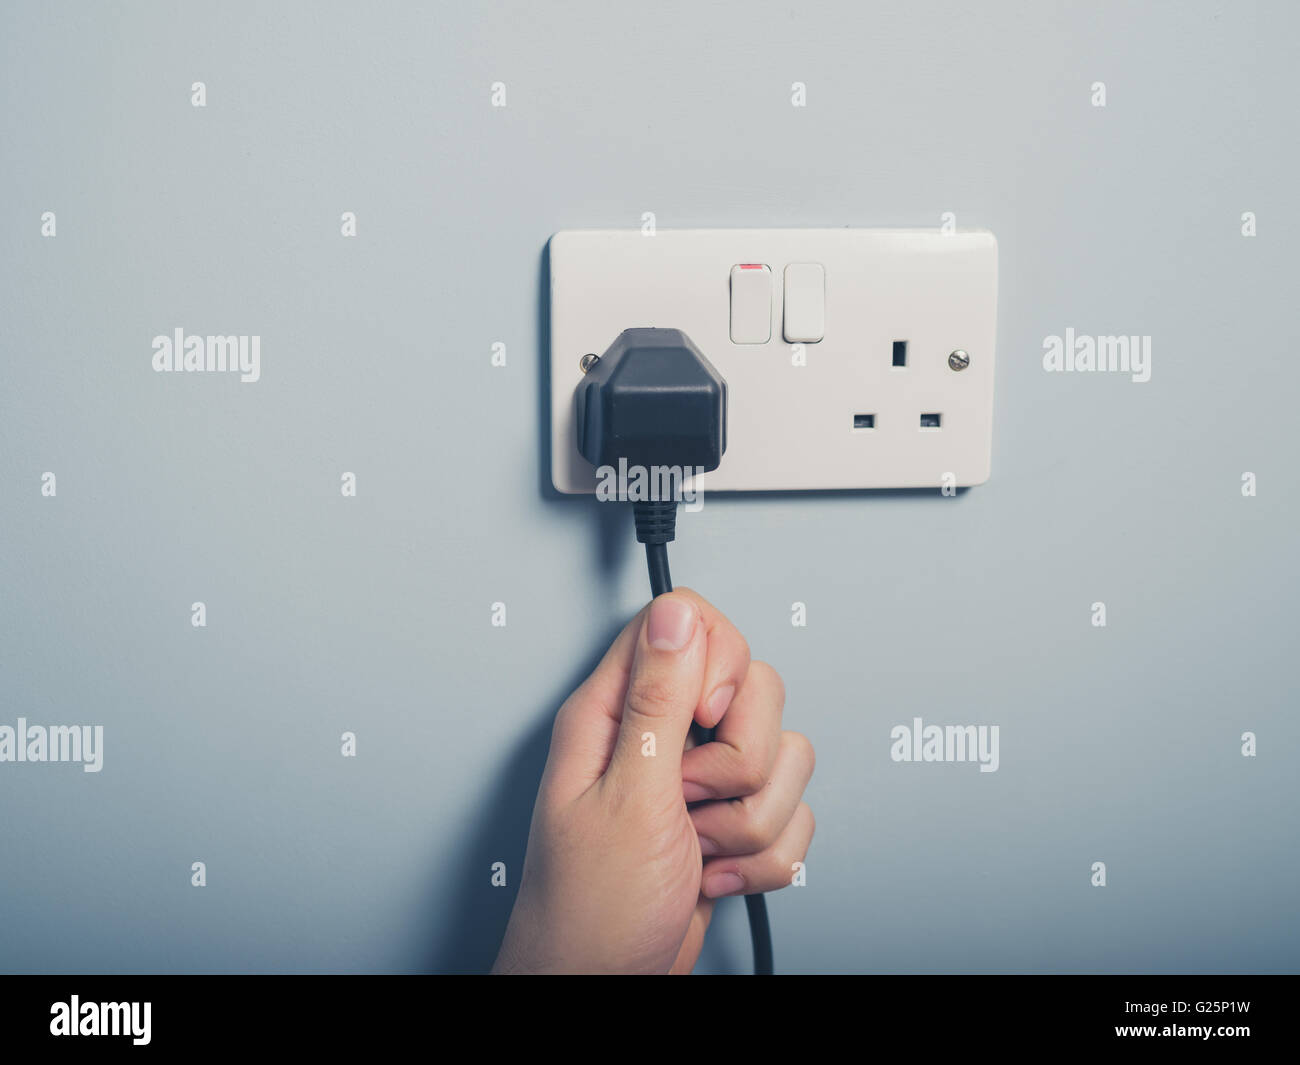 Pulling Switch Stock Photos & Pulling Switch Stock Images - Alamy